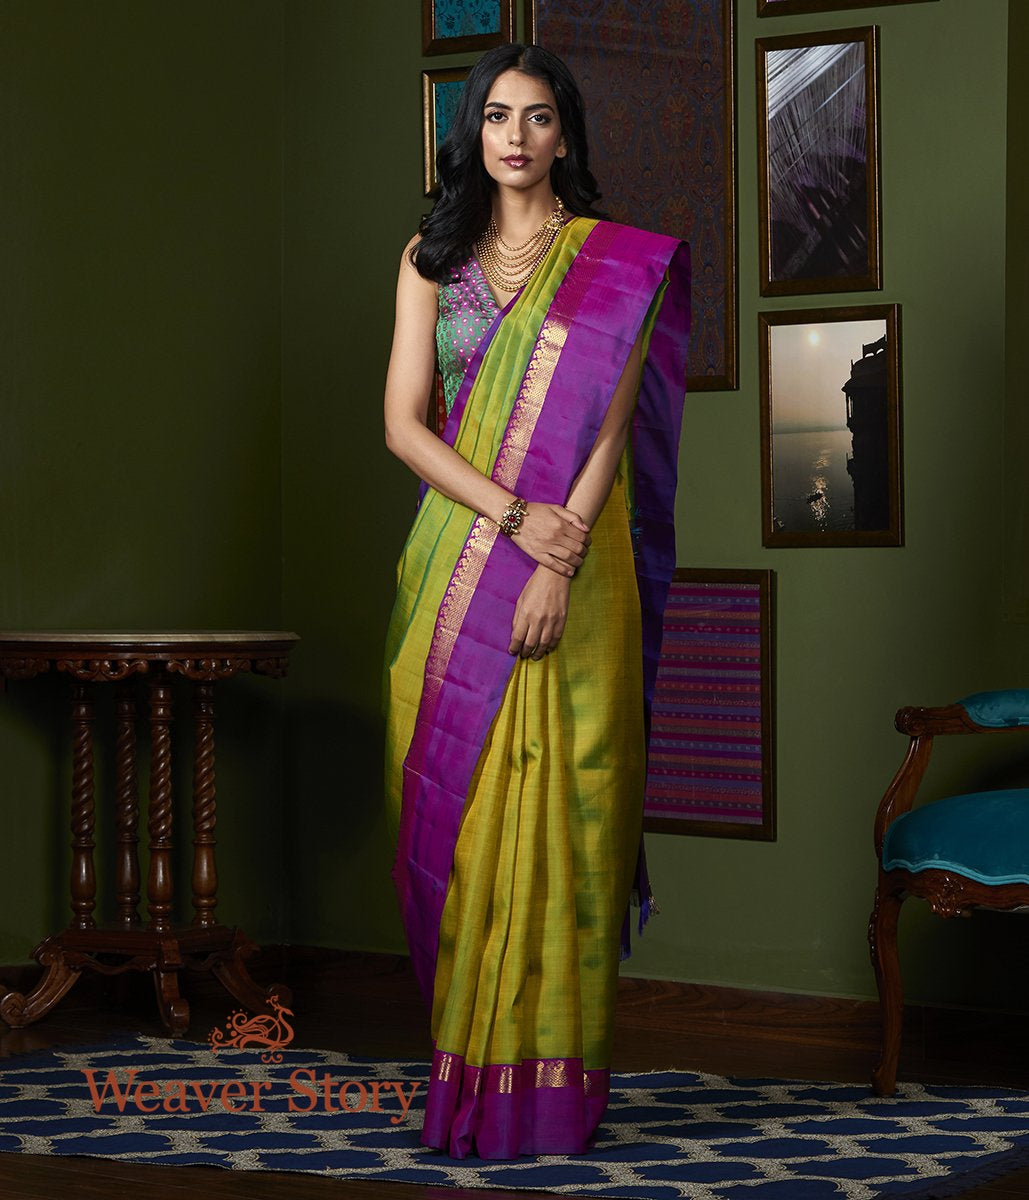 Handwoven Green Kanjivaram Silk Saree with Purple Border